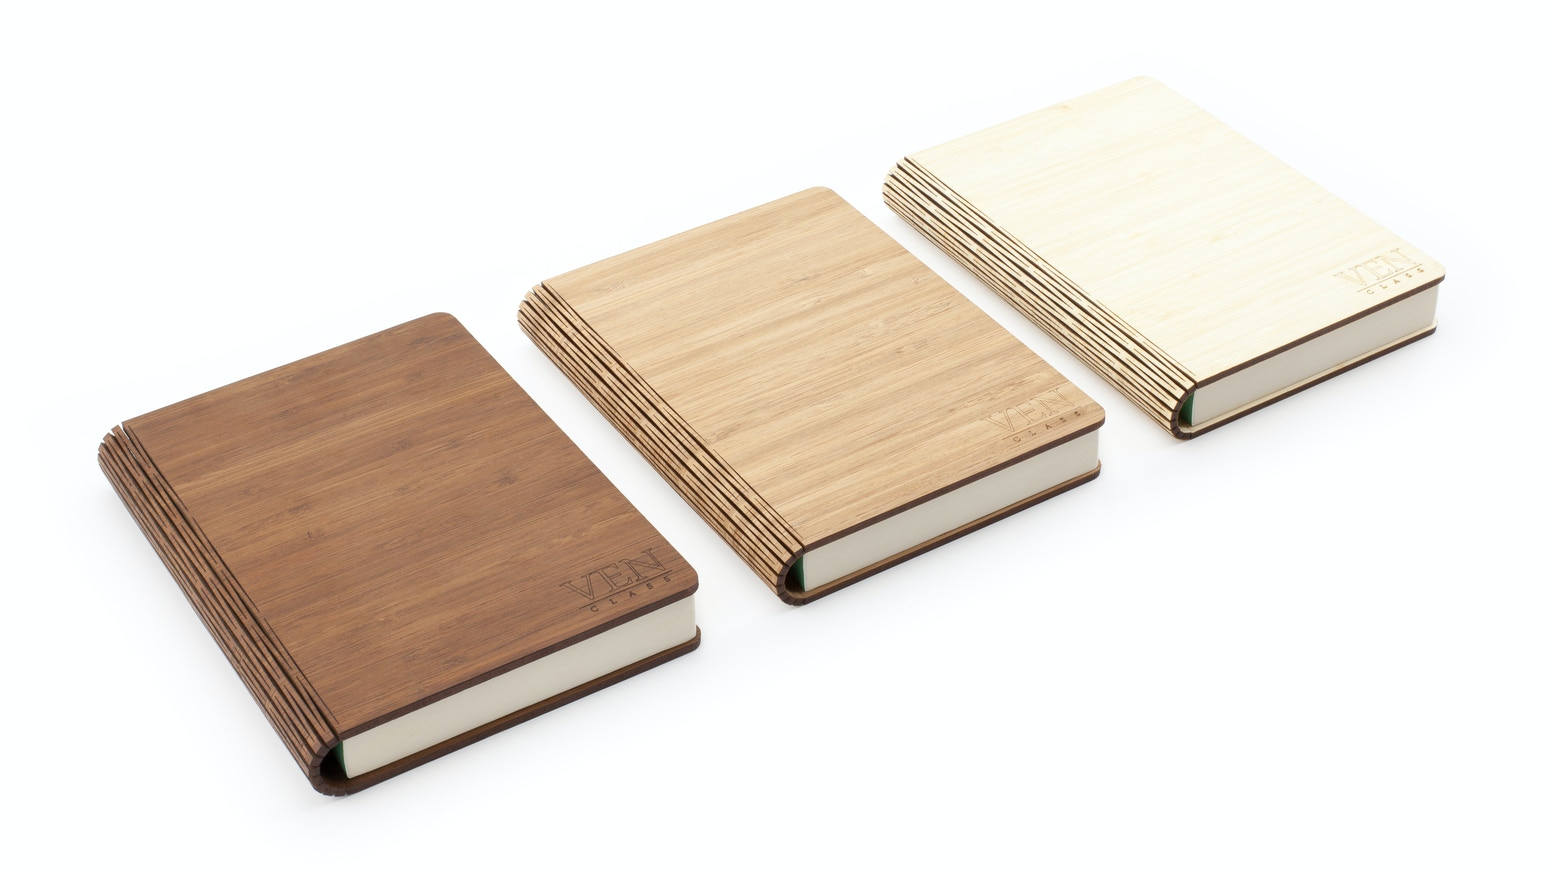 Beautiful and eco-friendly bamboo notebooks, available with plain, ruled, dotted or squared paper in a refillable format.